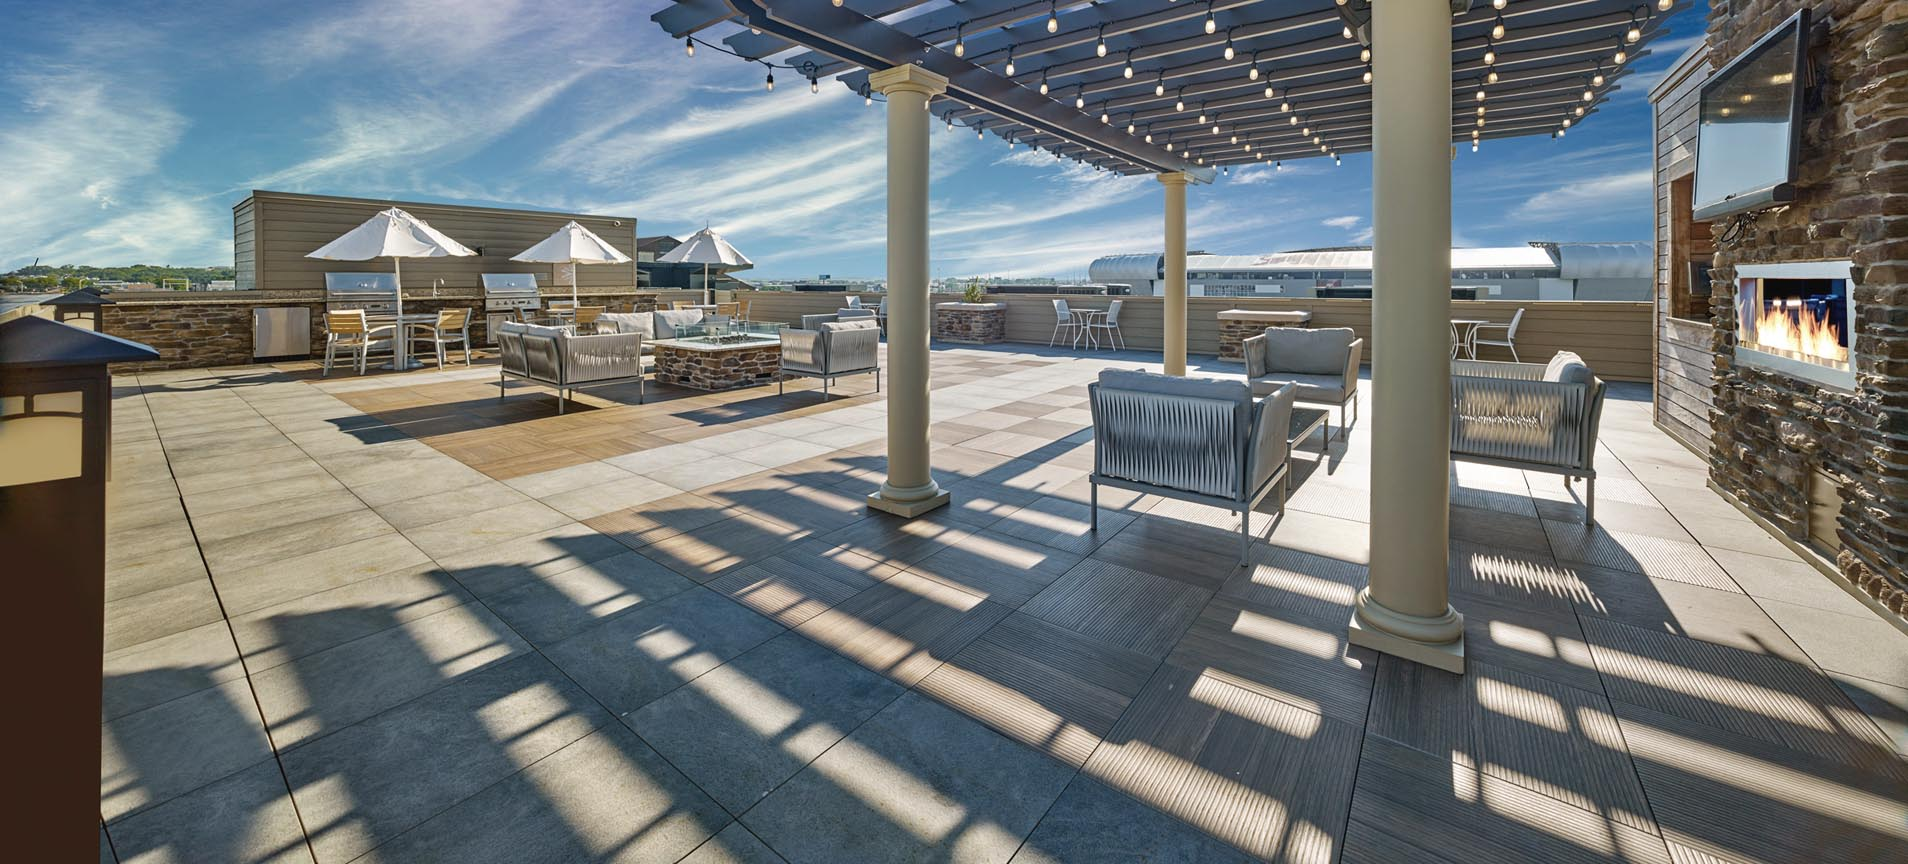 How Hot Can My Deck Pavers Get This Summer?